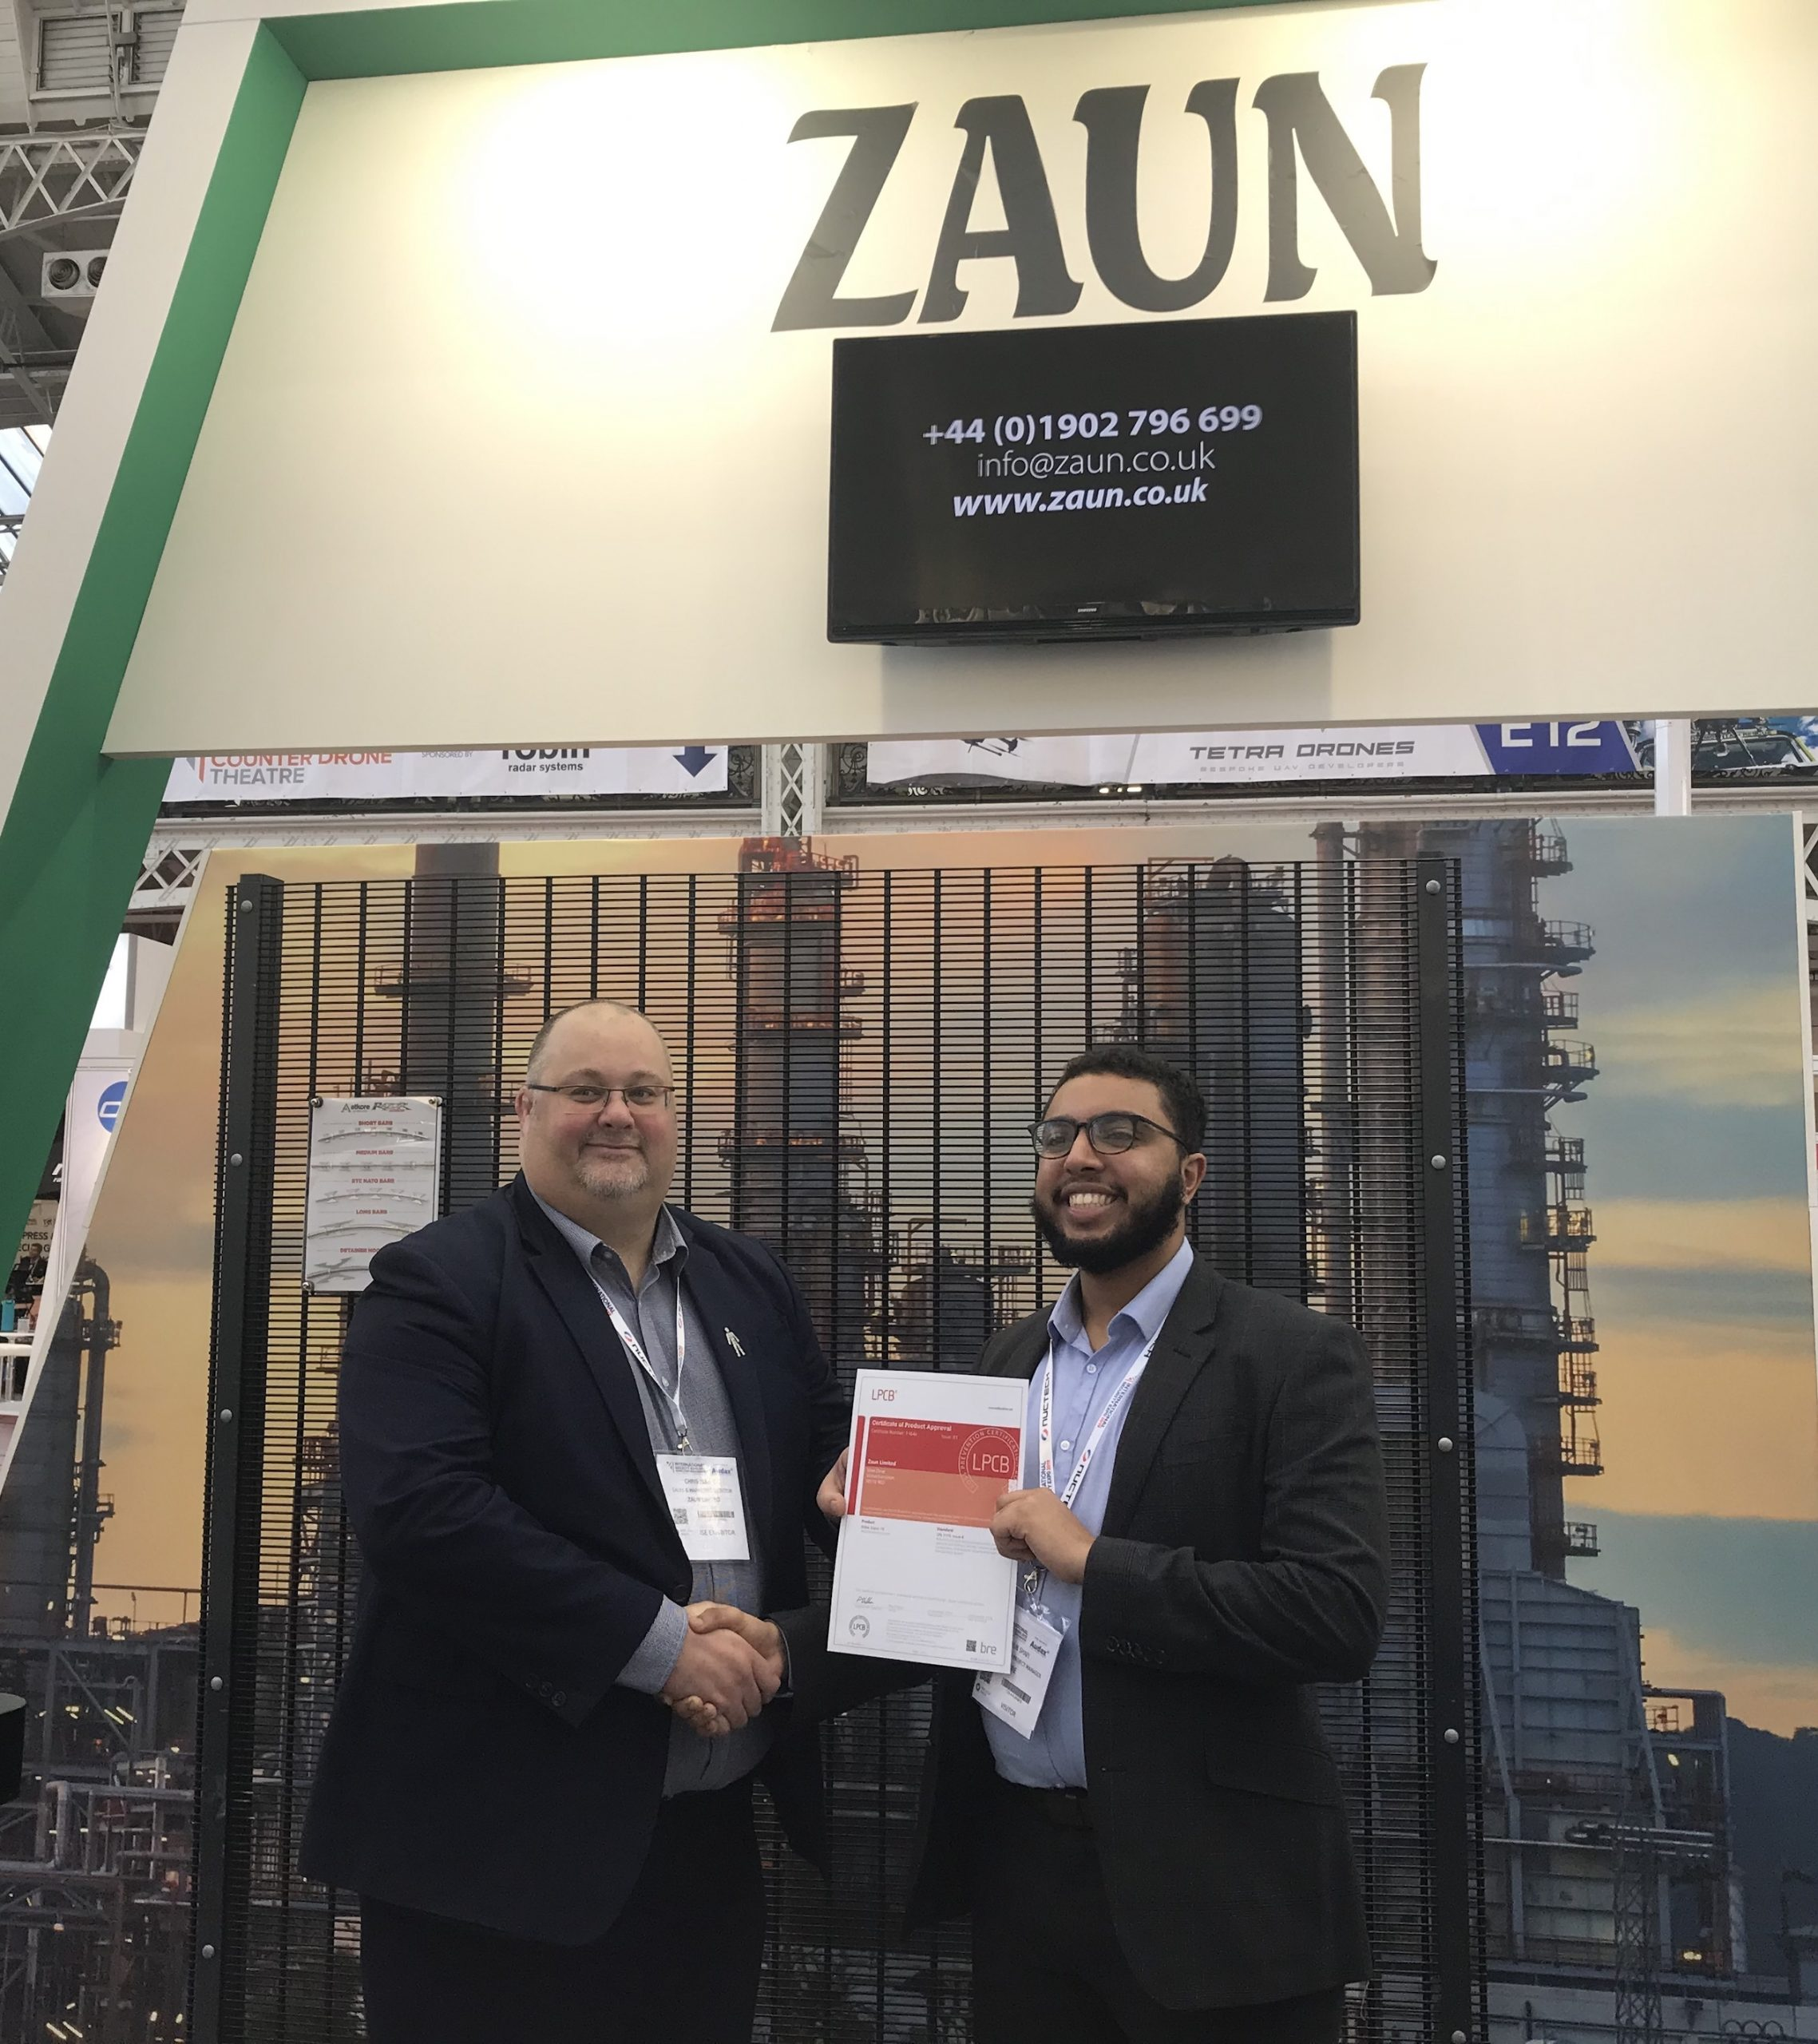 ZAUN UPLIFTS SR RANGE TO LATEST BRE STANDARD